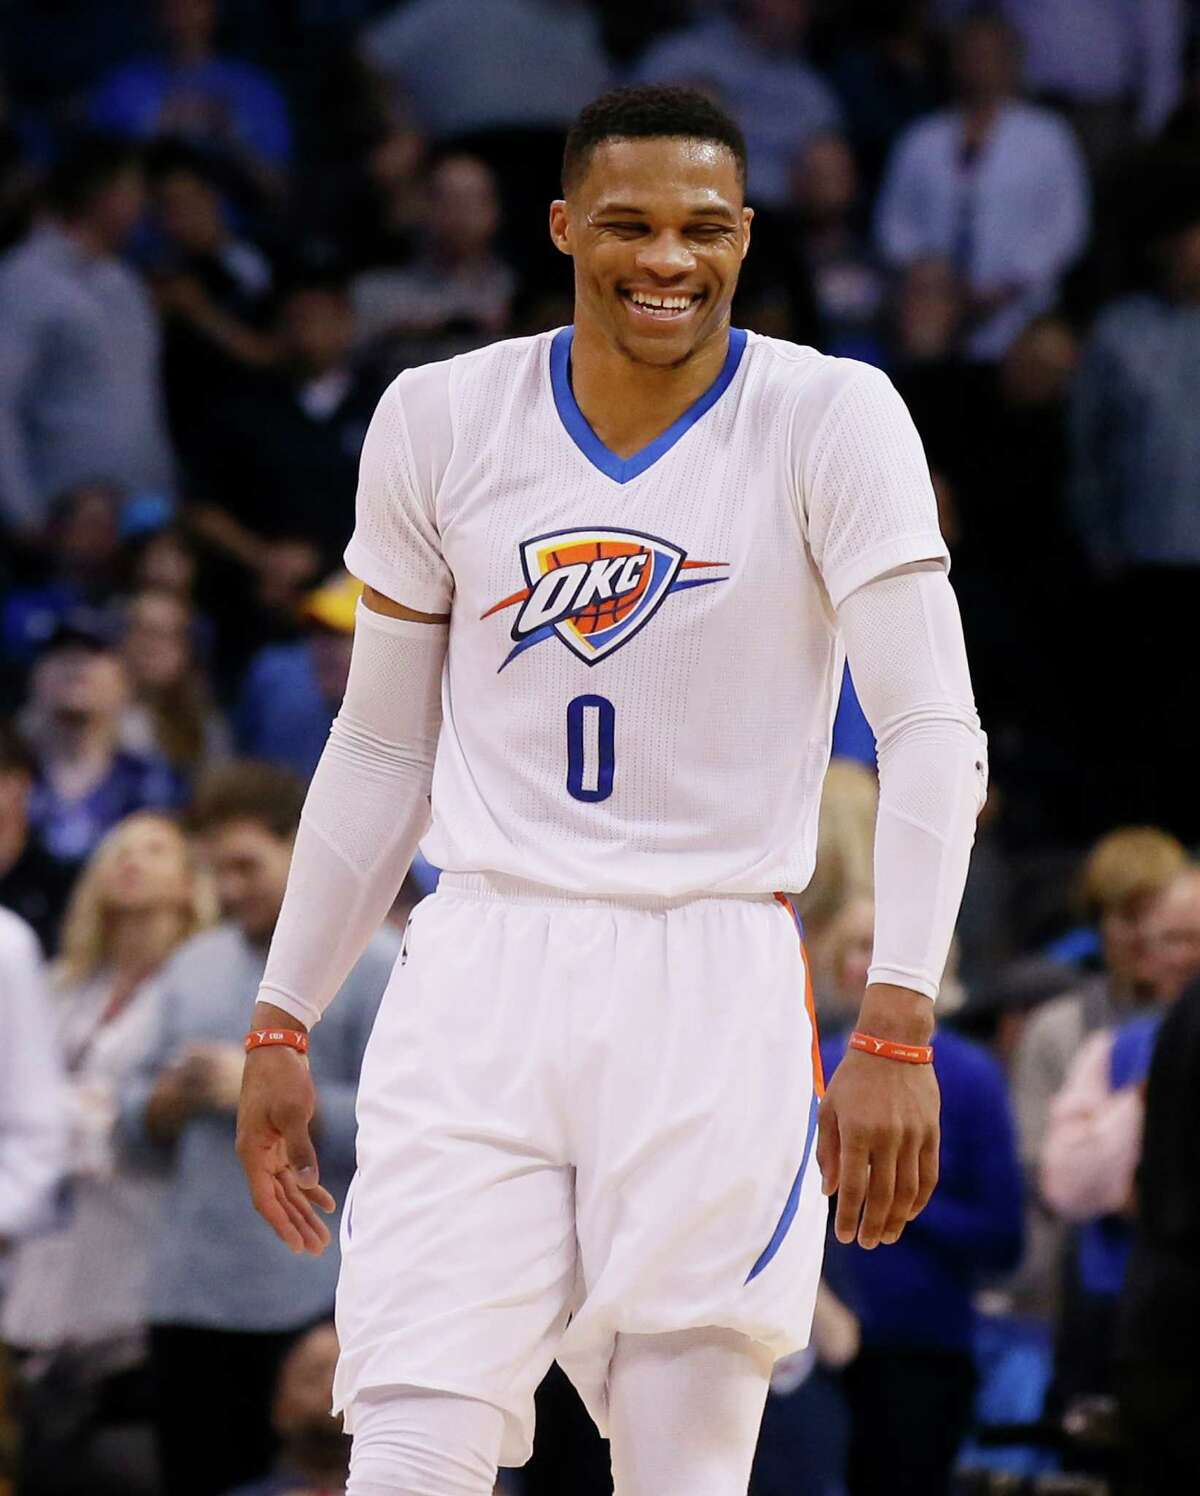 Oklahoma City Thunder guard Russell Westbrook (0) laughs in the fourth quarter of an NBA basketball game against the Dallas Mavericks in Oklahoma City, Thursday, Jan. 26, 2017. Oklahoma City won 109-98. (AP Photo/Sue Ogrocki)